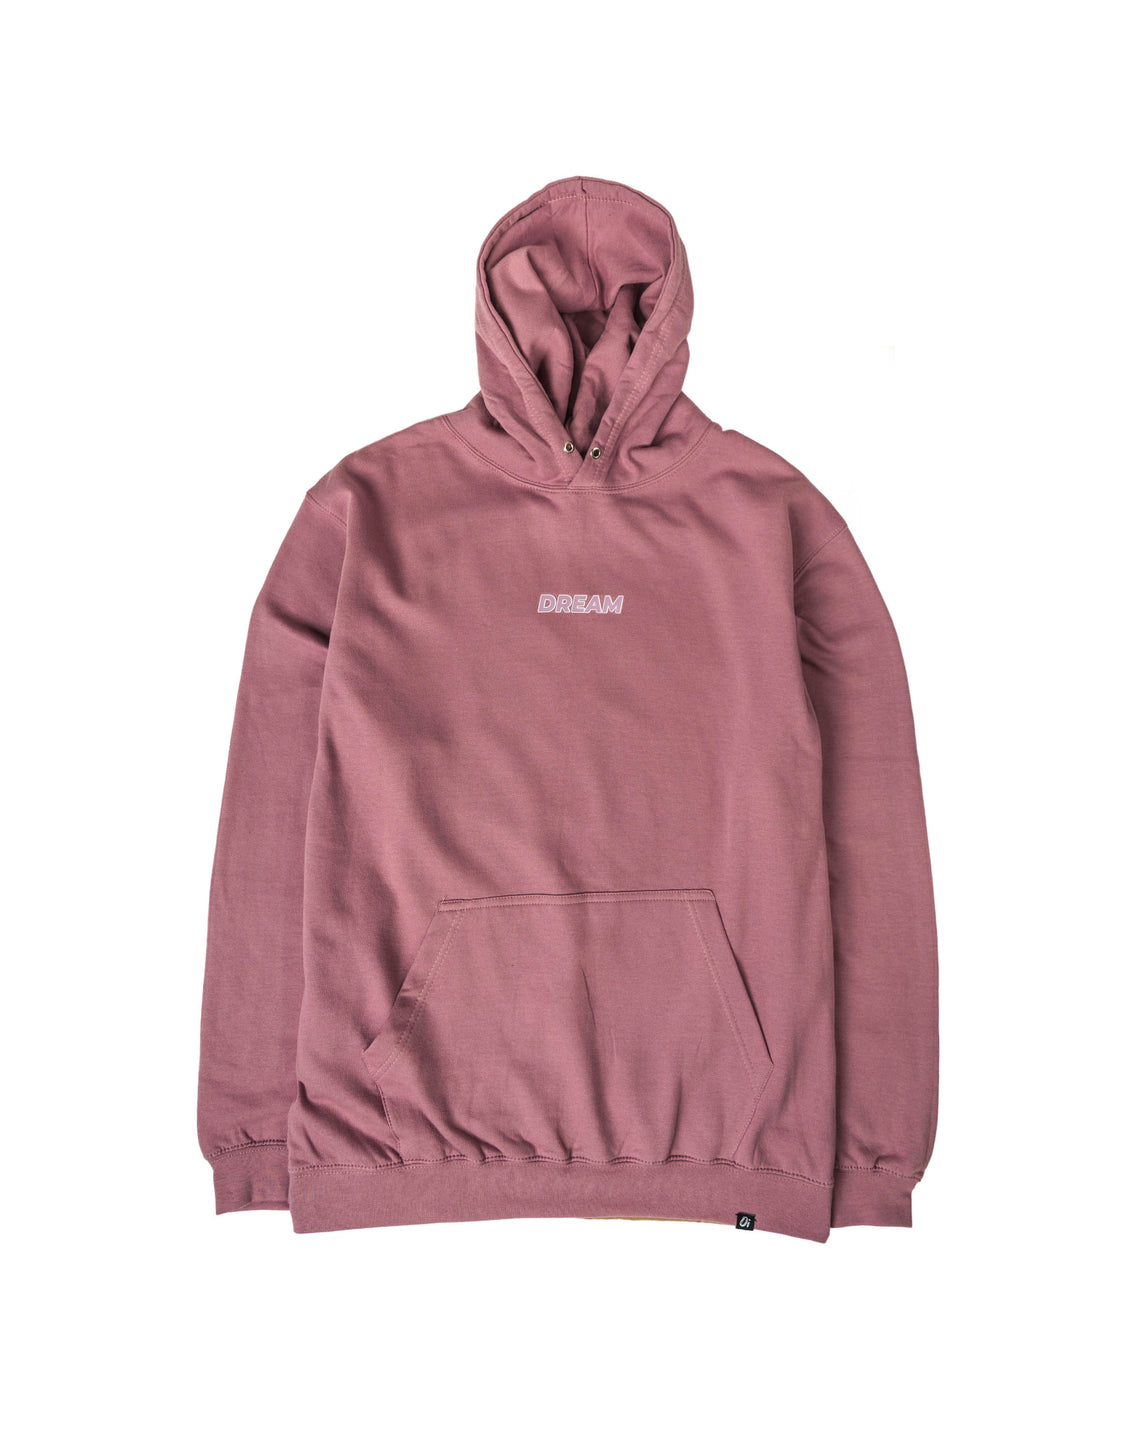 Dusty Dream Hoodie: Art